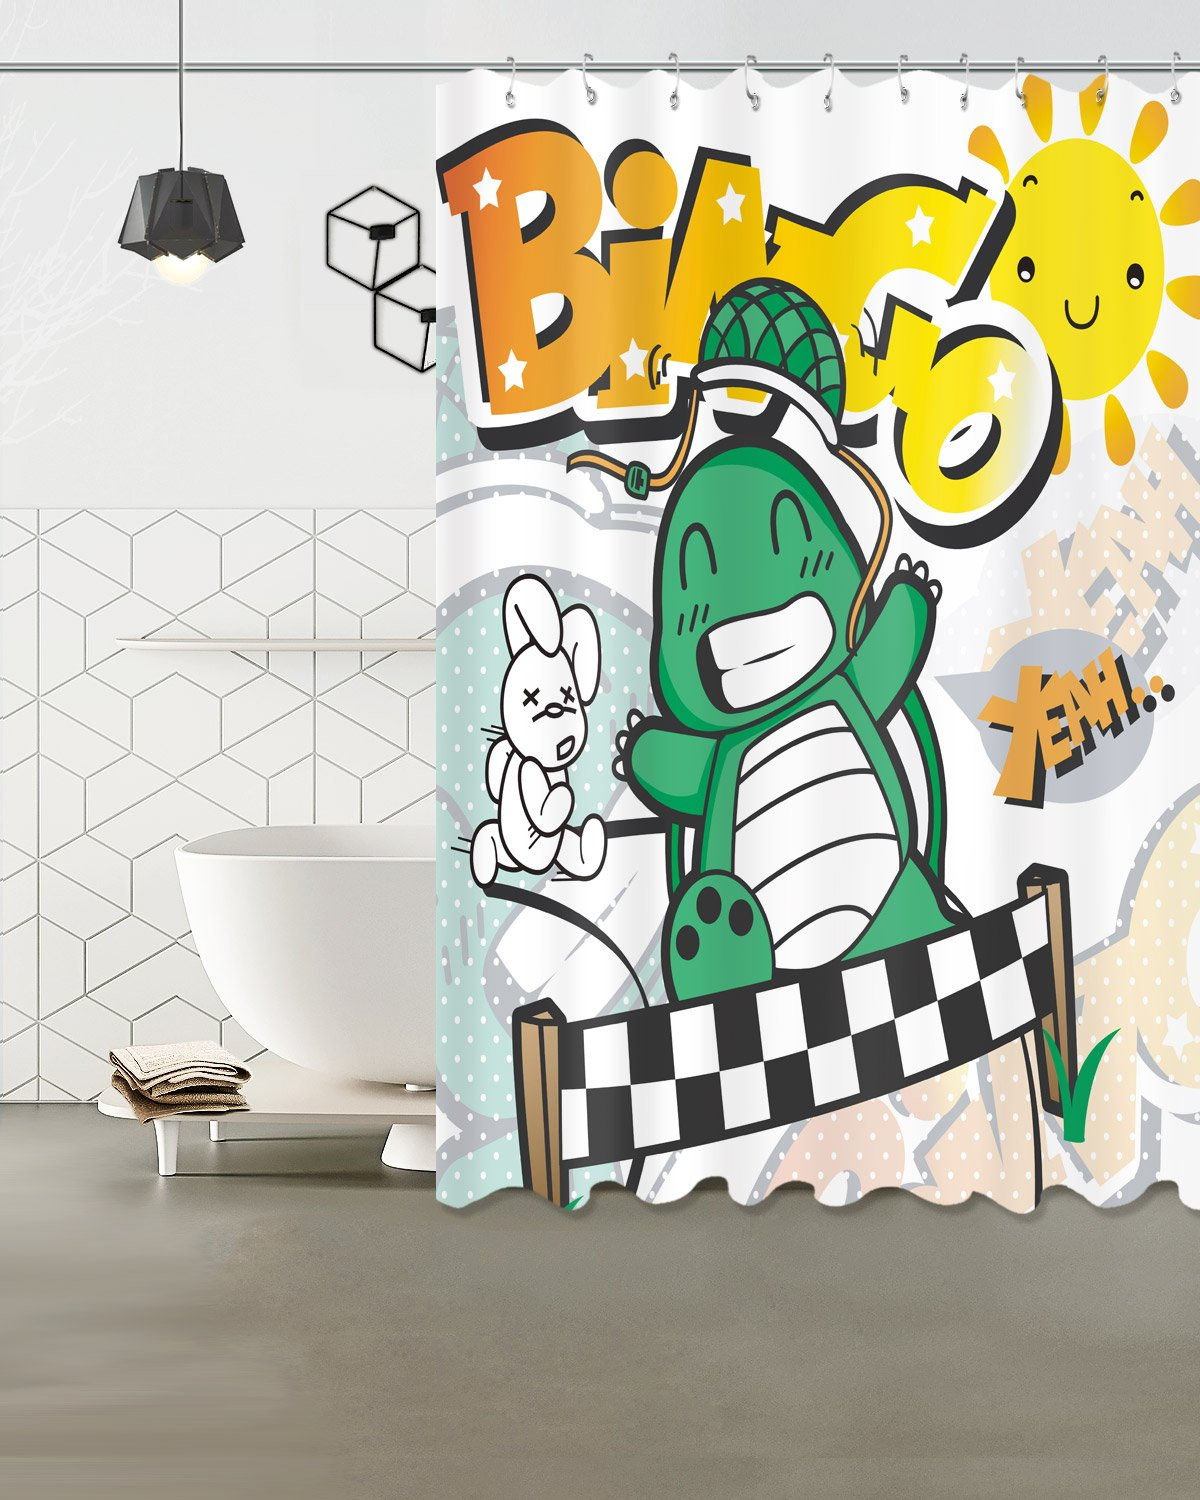 Children Shower Curtain Decor,Tortoise and Hare racing bingo game,Polyester Fabric Waterproof Bathroom Decor Shower Curtain Set with 12 Hooks,60X72 Inches by LB